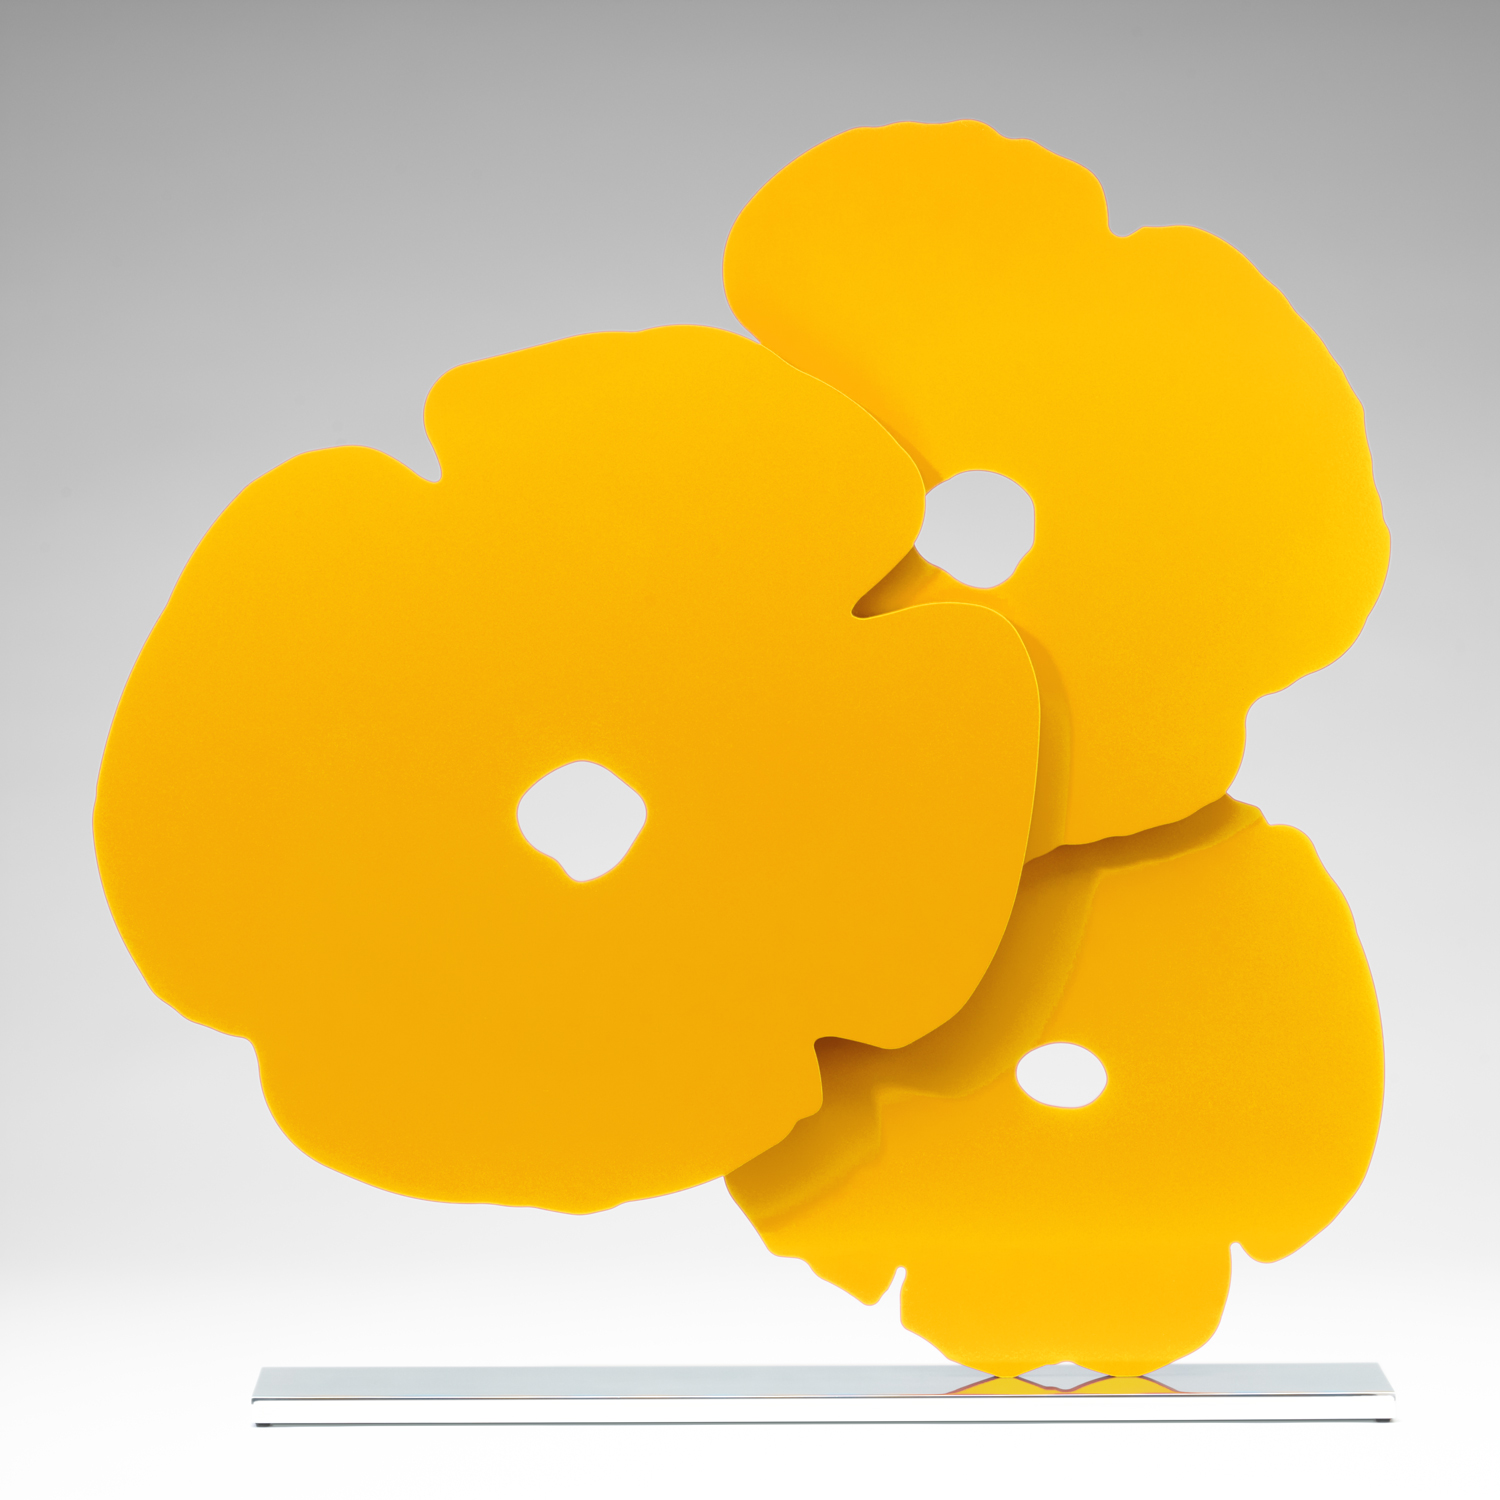 Donald Sultan  Big Yellow Poppies ,  2015, 2015 3/4 in. thick painted aluminum 72 x 72 in. edition of 6  comes with powder coat painted black aluminum base. A polished stainless steel base is available for an additional charge.  also available in 96 x 96 in.version